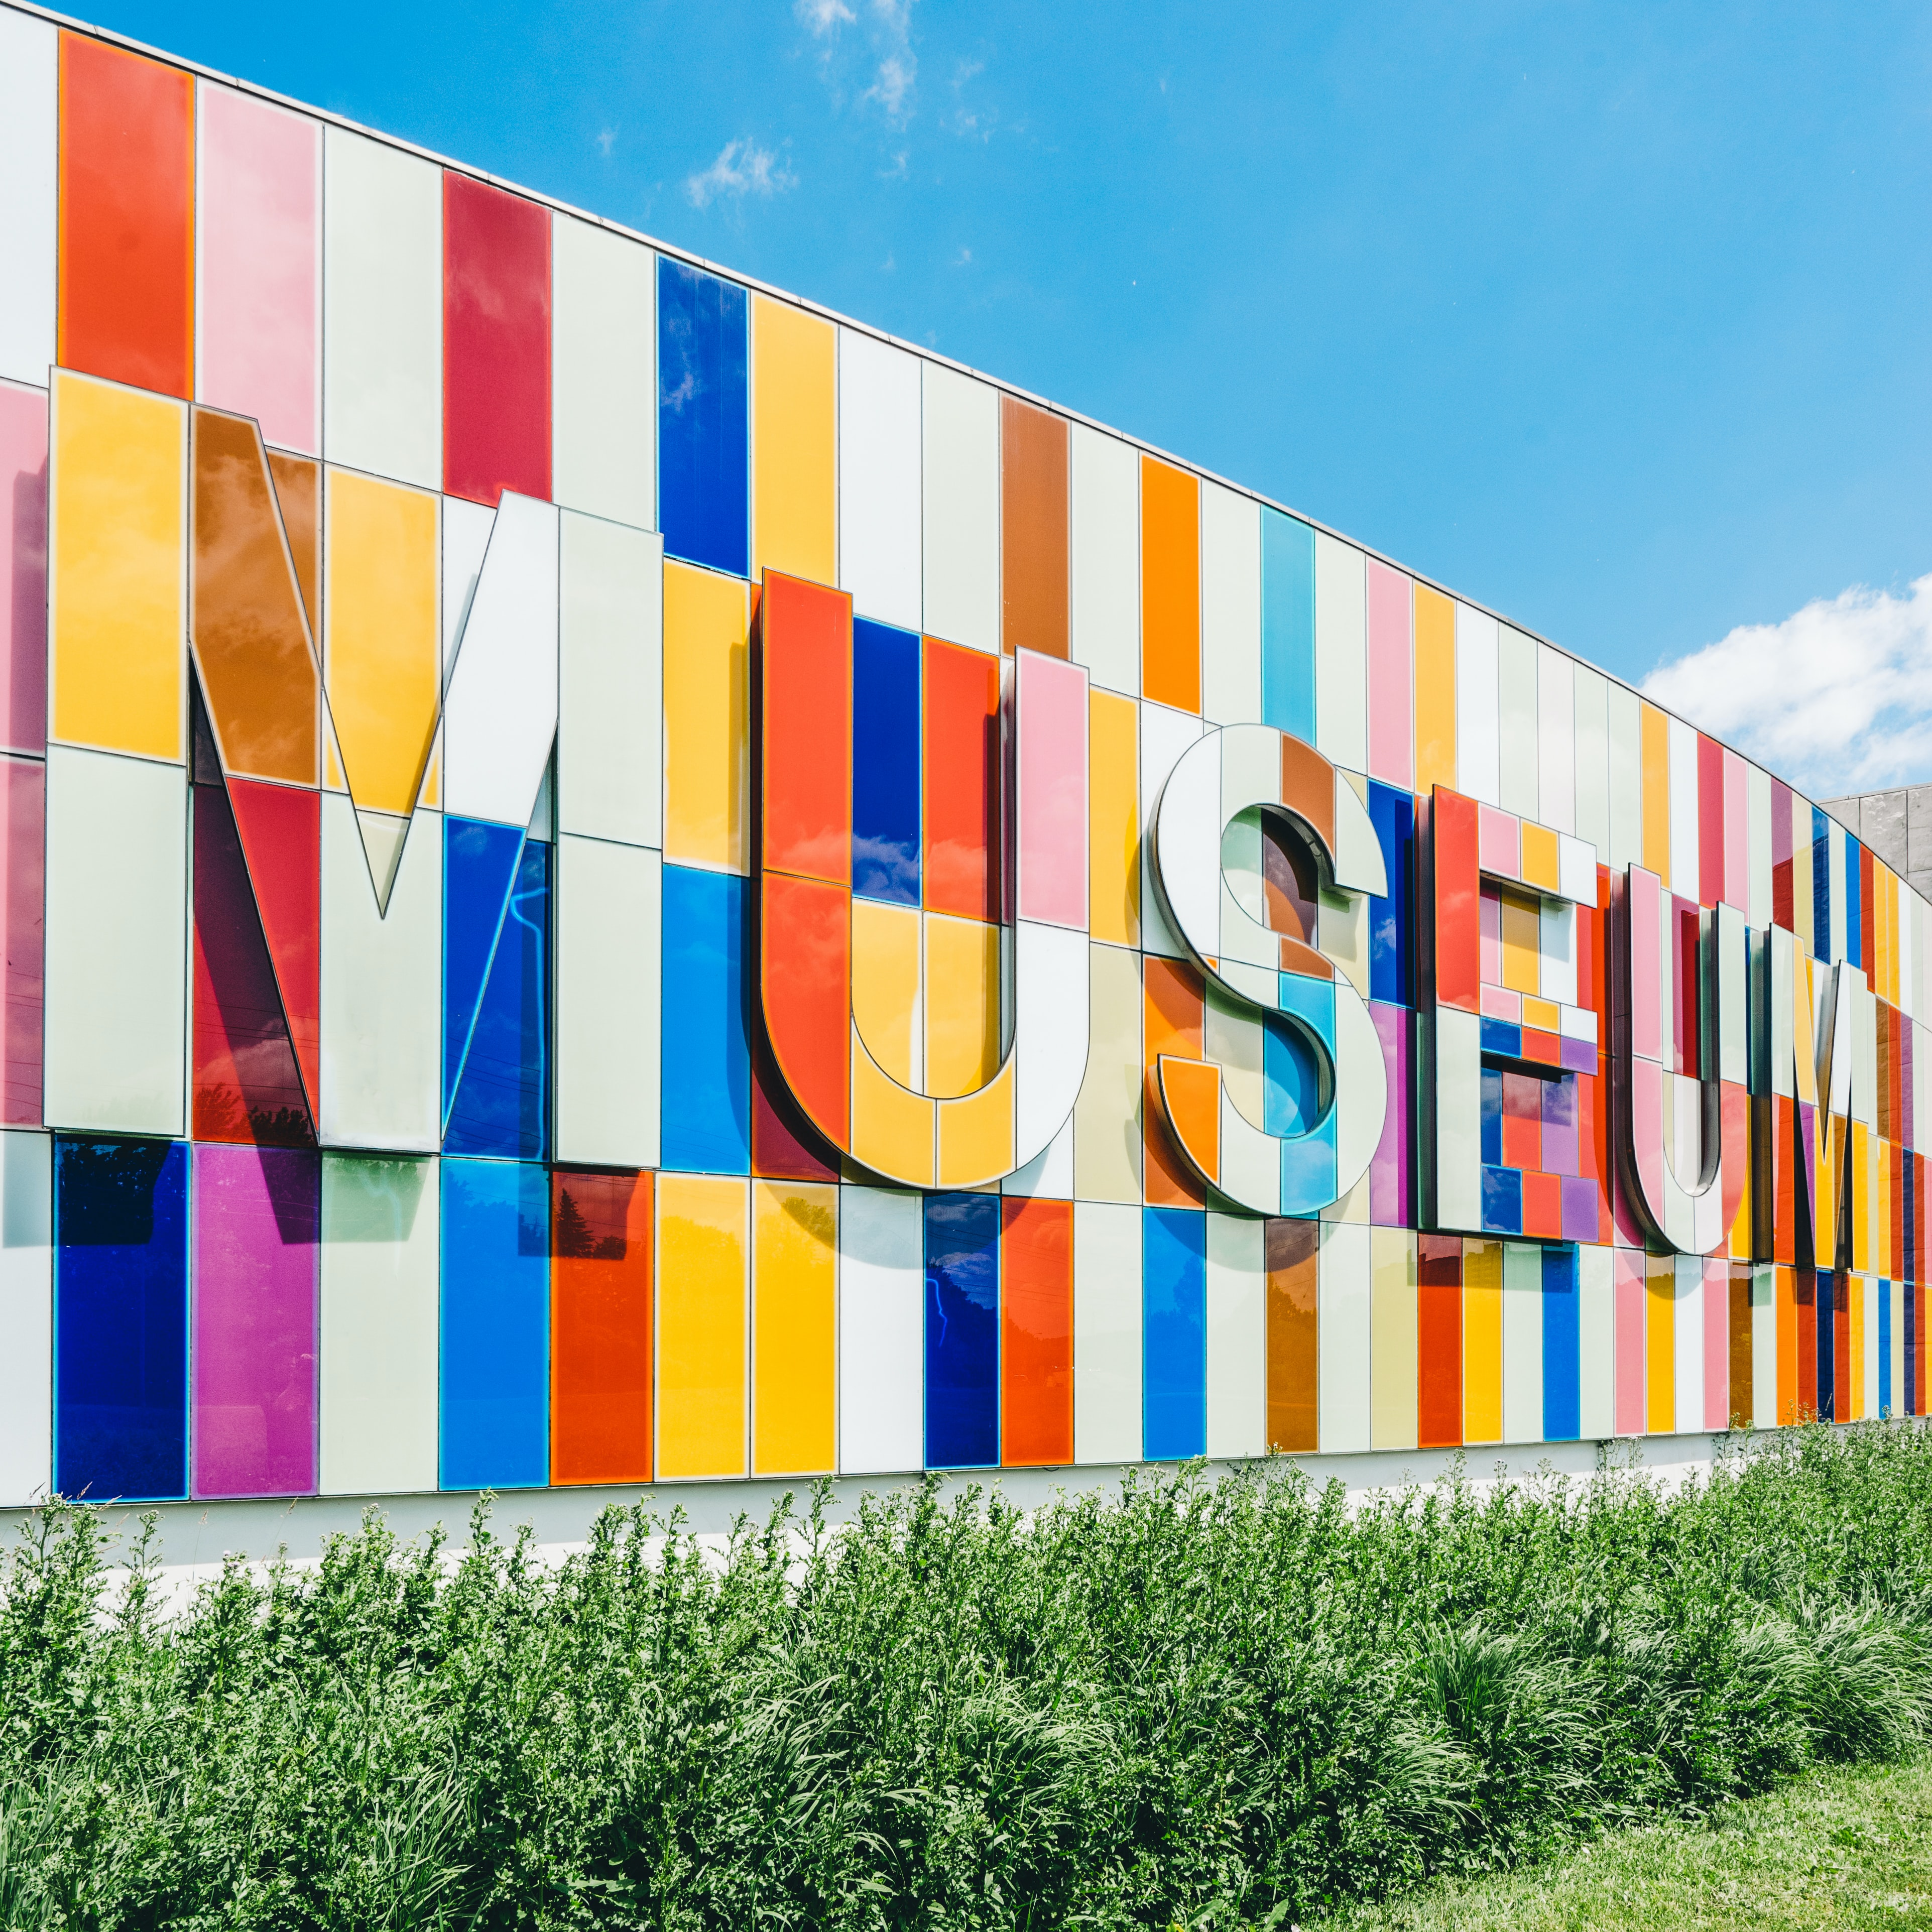 Colorful tile sign of museum typography text sign near grass with blue sky, Waterloo Region Museum